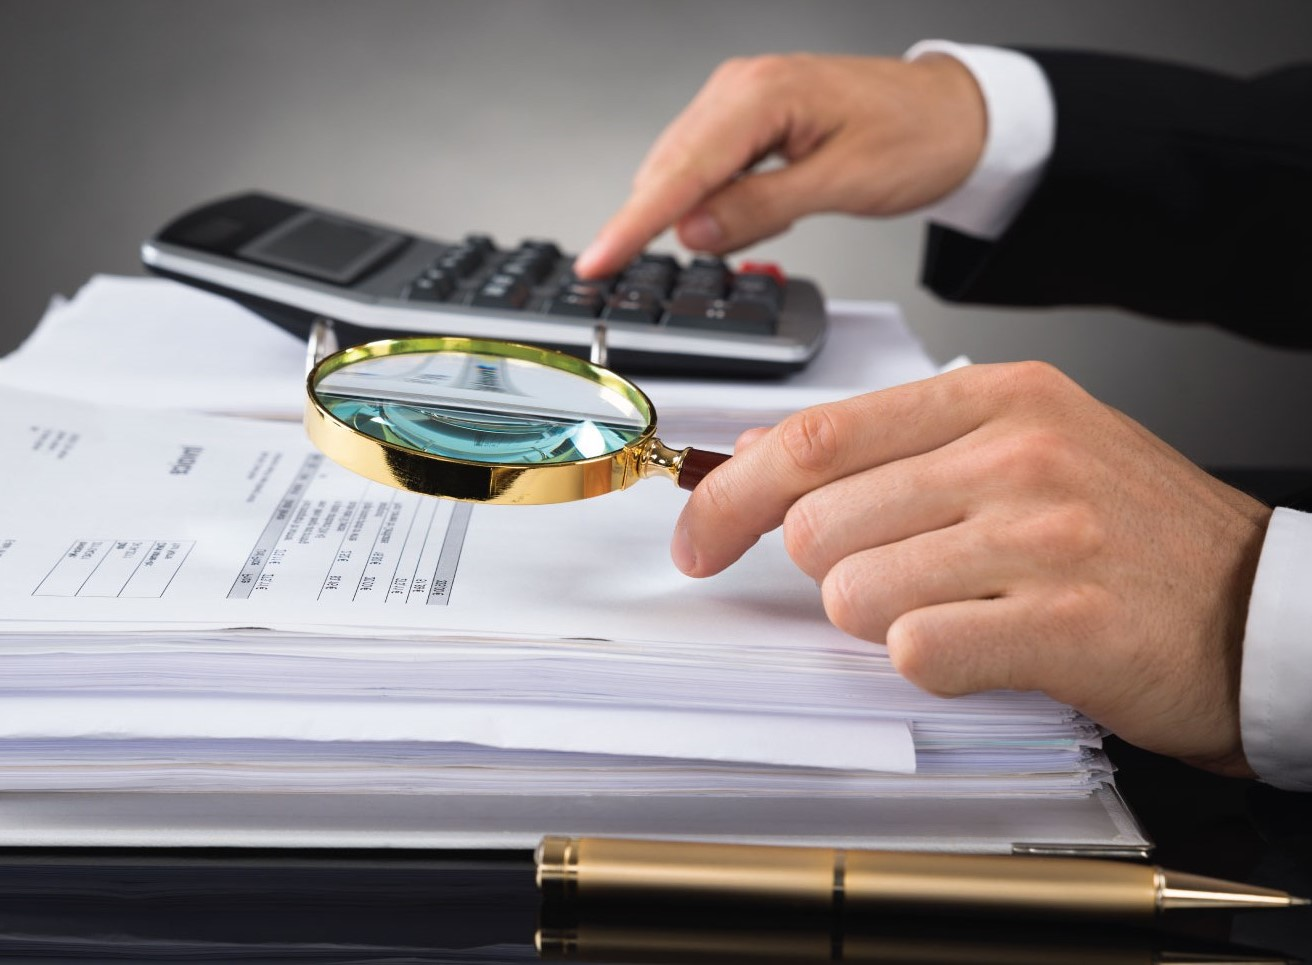 forensic accounting Forensic accounting is a specialized accounting career that focuses on analyzing financial information to detect if a white collar crime has taken place within an organization.